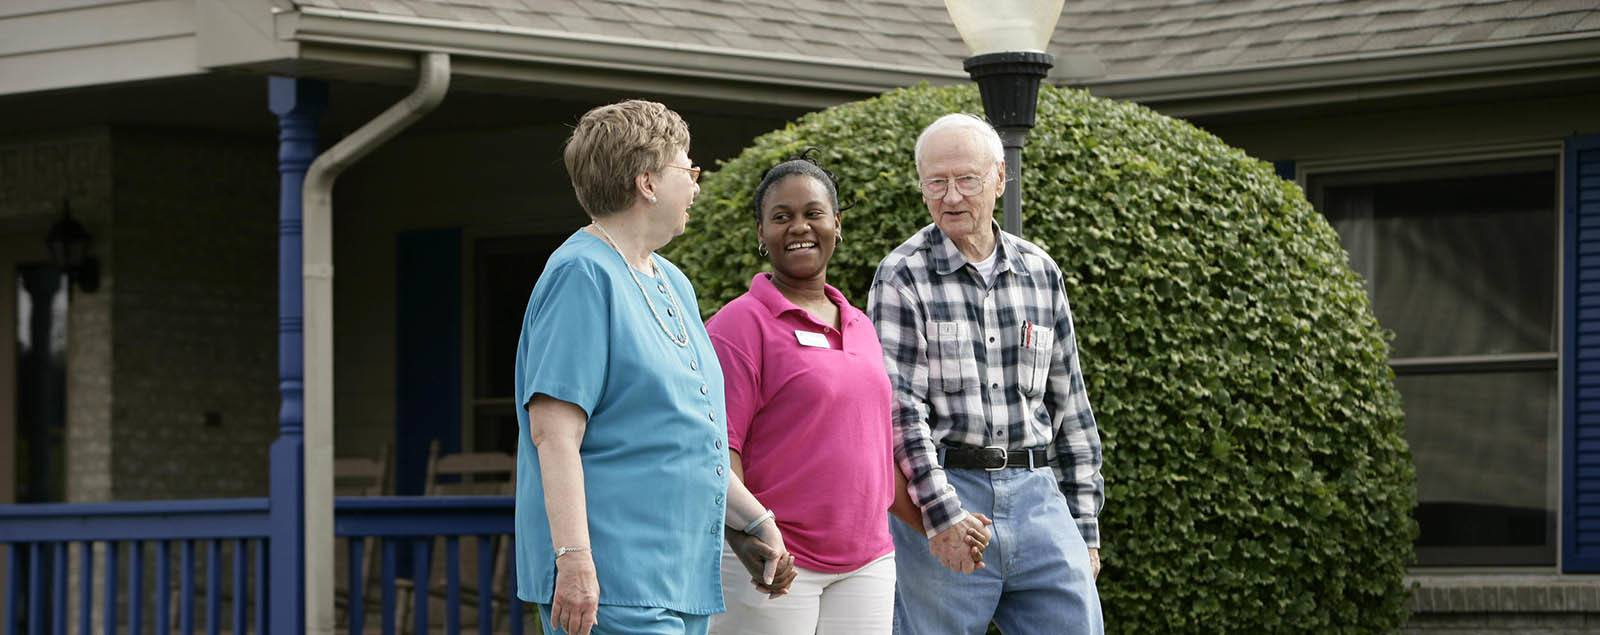 Request a Sterling Heights senior living facility brochure